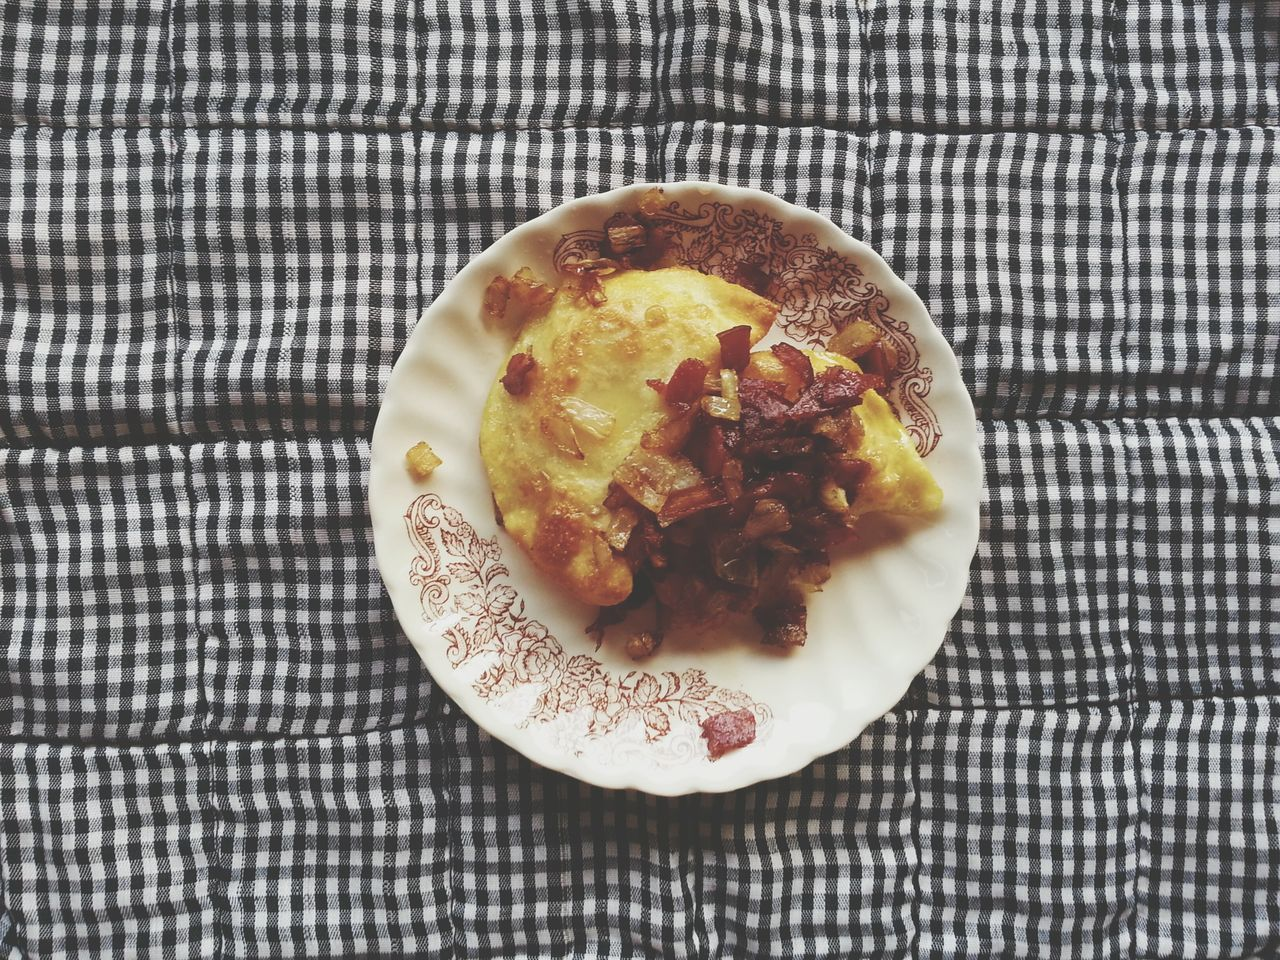 Cooksomething Cook  Pierogi Food for Foodies Breakfast Friday Morning have a nice day!